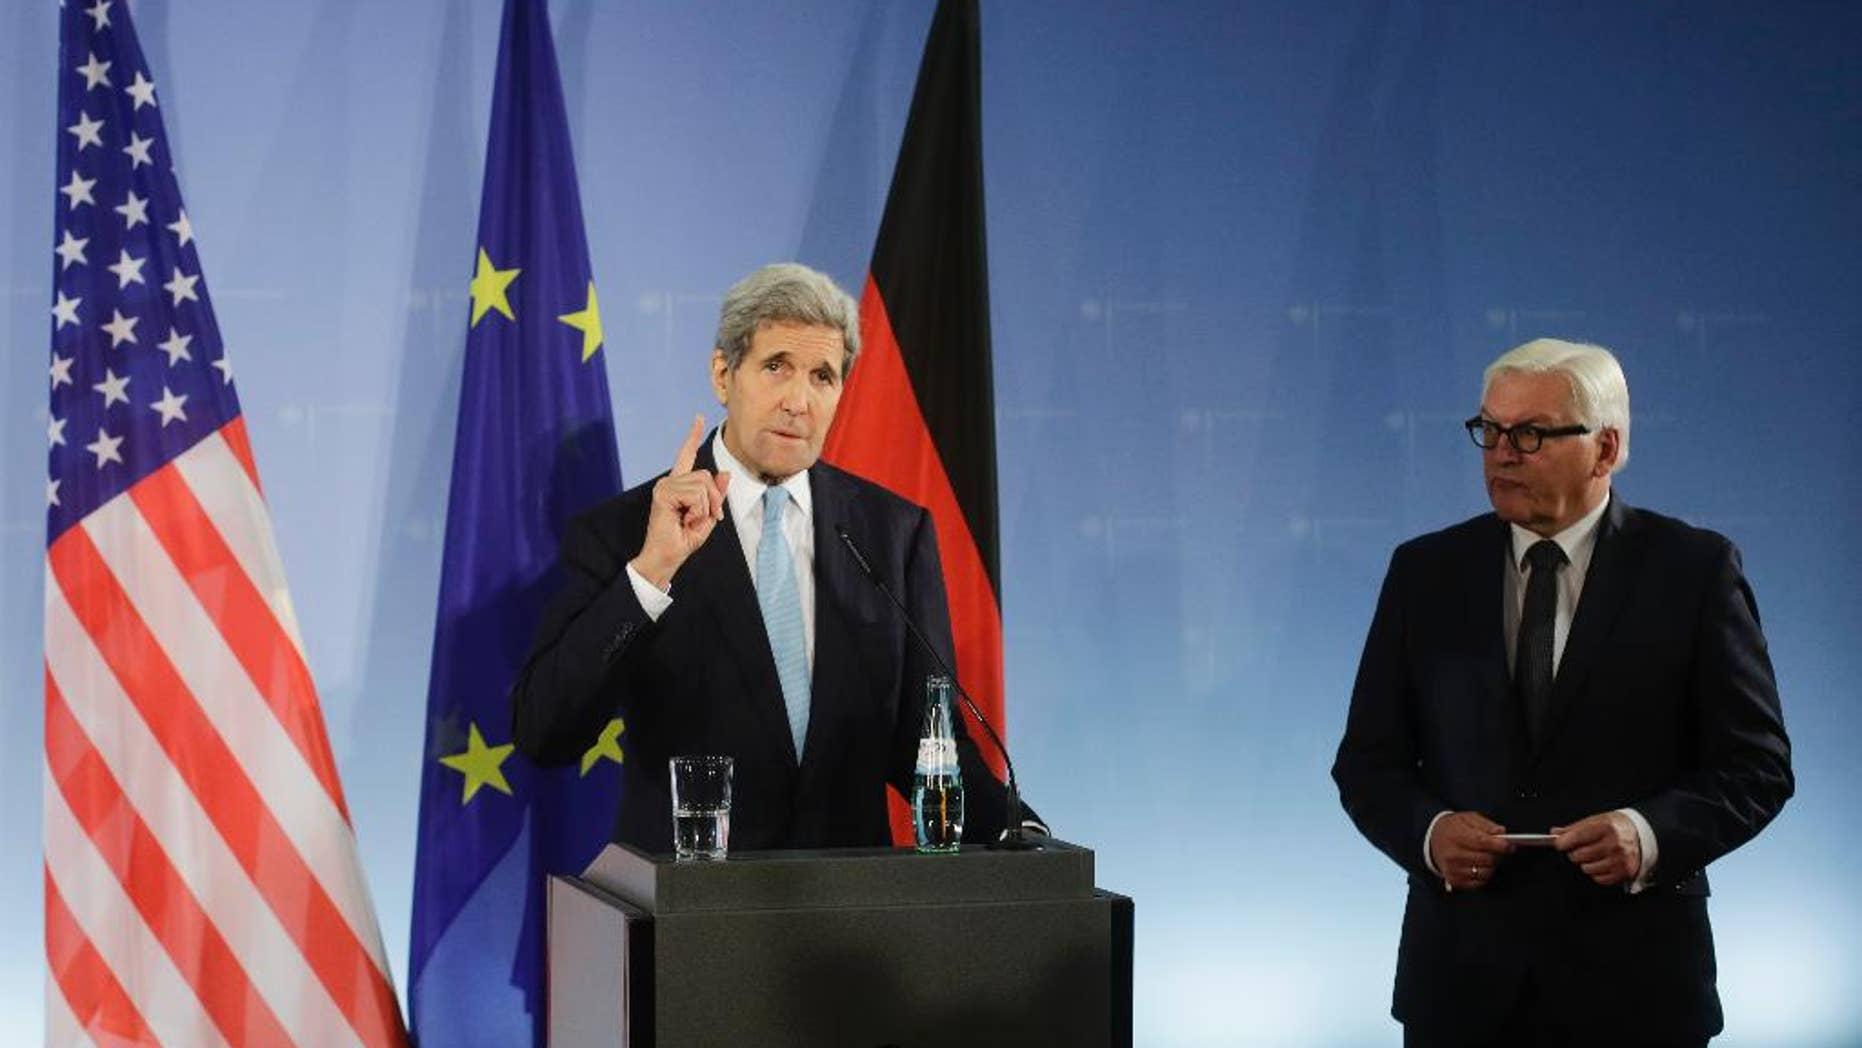 U.S. Secretary of State John Kerry, left, and German Foreign Minister Frank-Walter Steinmeier brief the media prior to a meeting at the foreign ministry Auswaertiges Amt in Berlin, Germany, Thursday, Oct. 22, 2015. (AP Photo/Markus Schreiber)